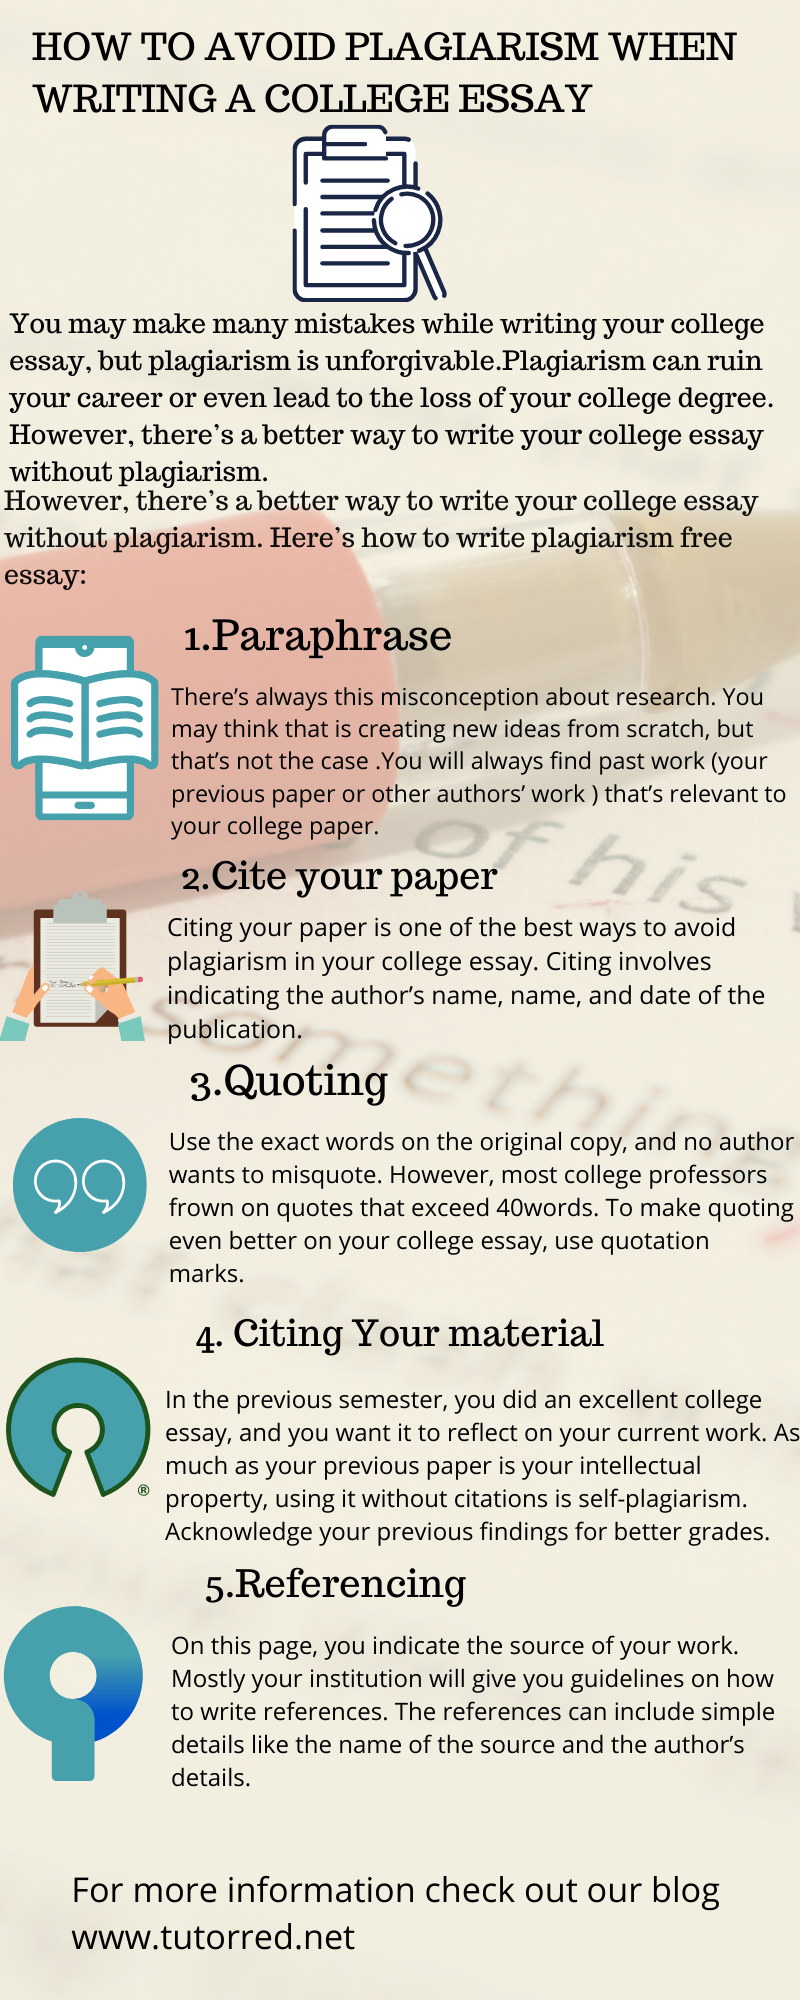 How To Avoid Plagiarism Checker Tip Essay Paraphrase Don T Plagiarize